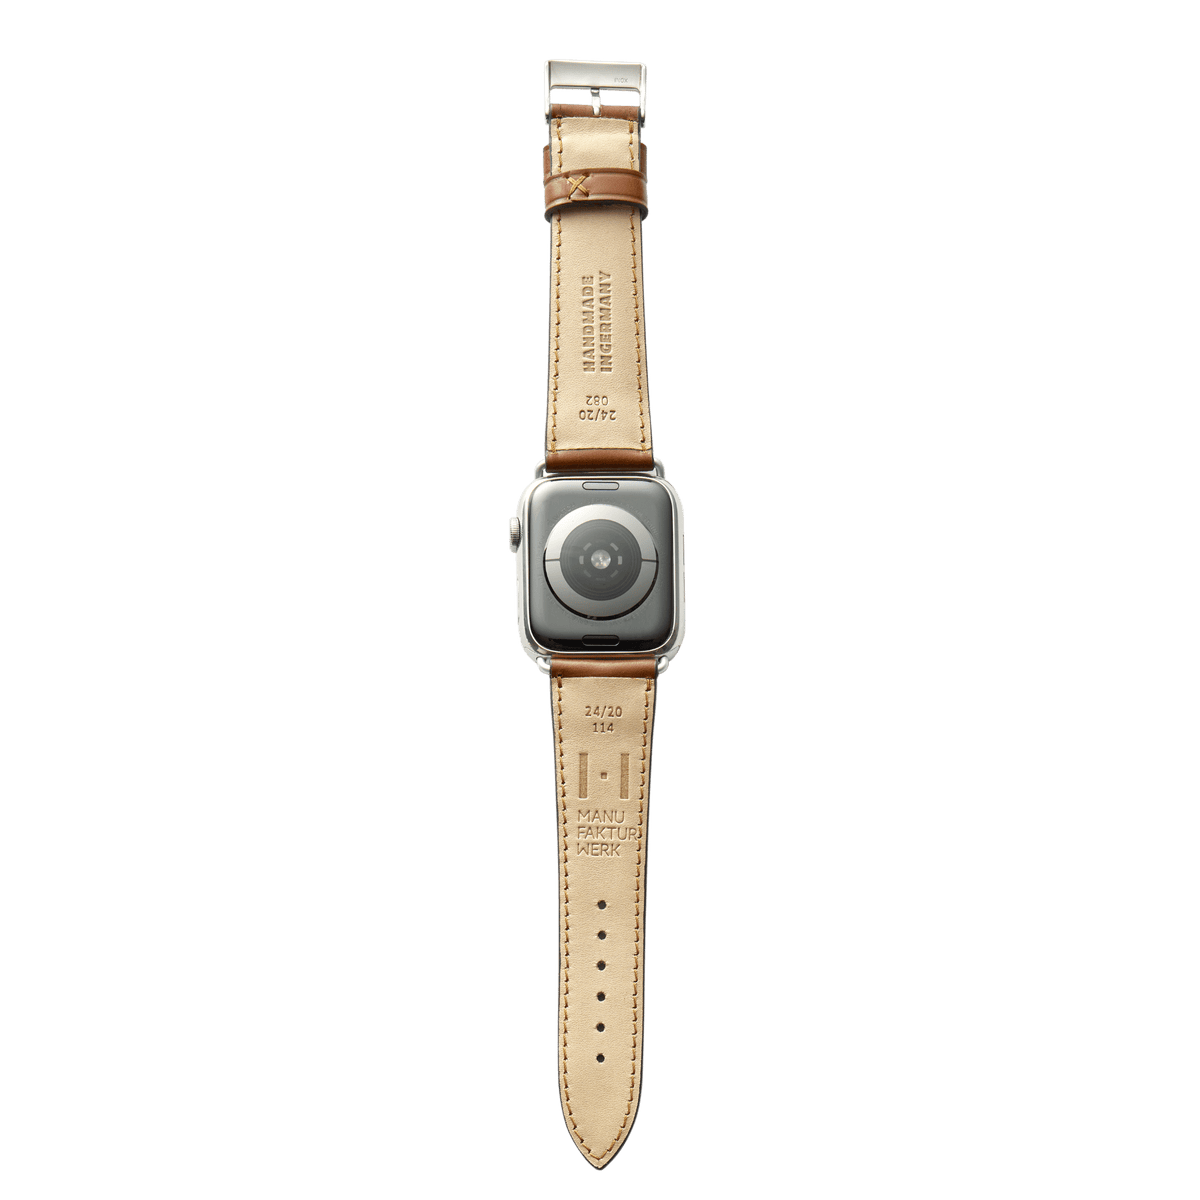 Lederarmband für Apple Watch <br><p>Winterhude cognac (Shell Cordovan)</p> - MANUFAKTURWERK